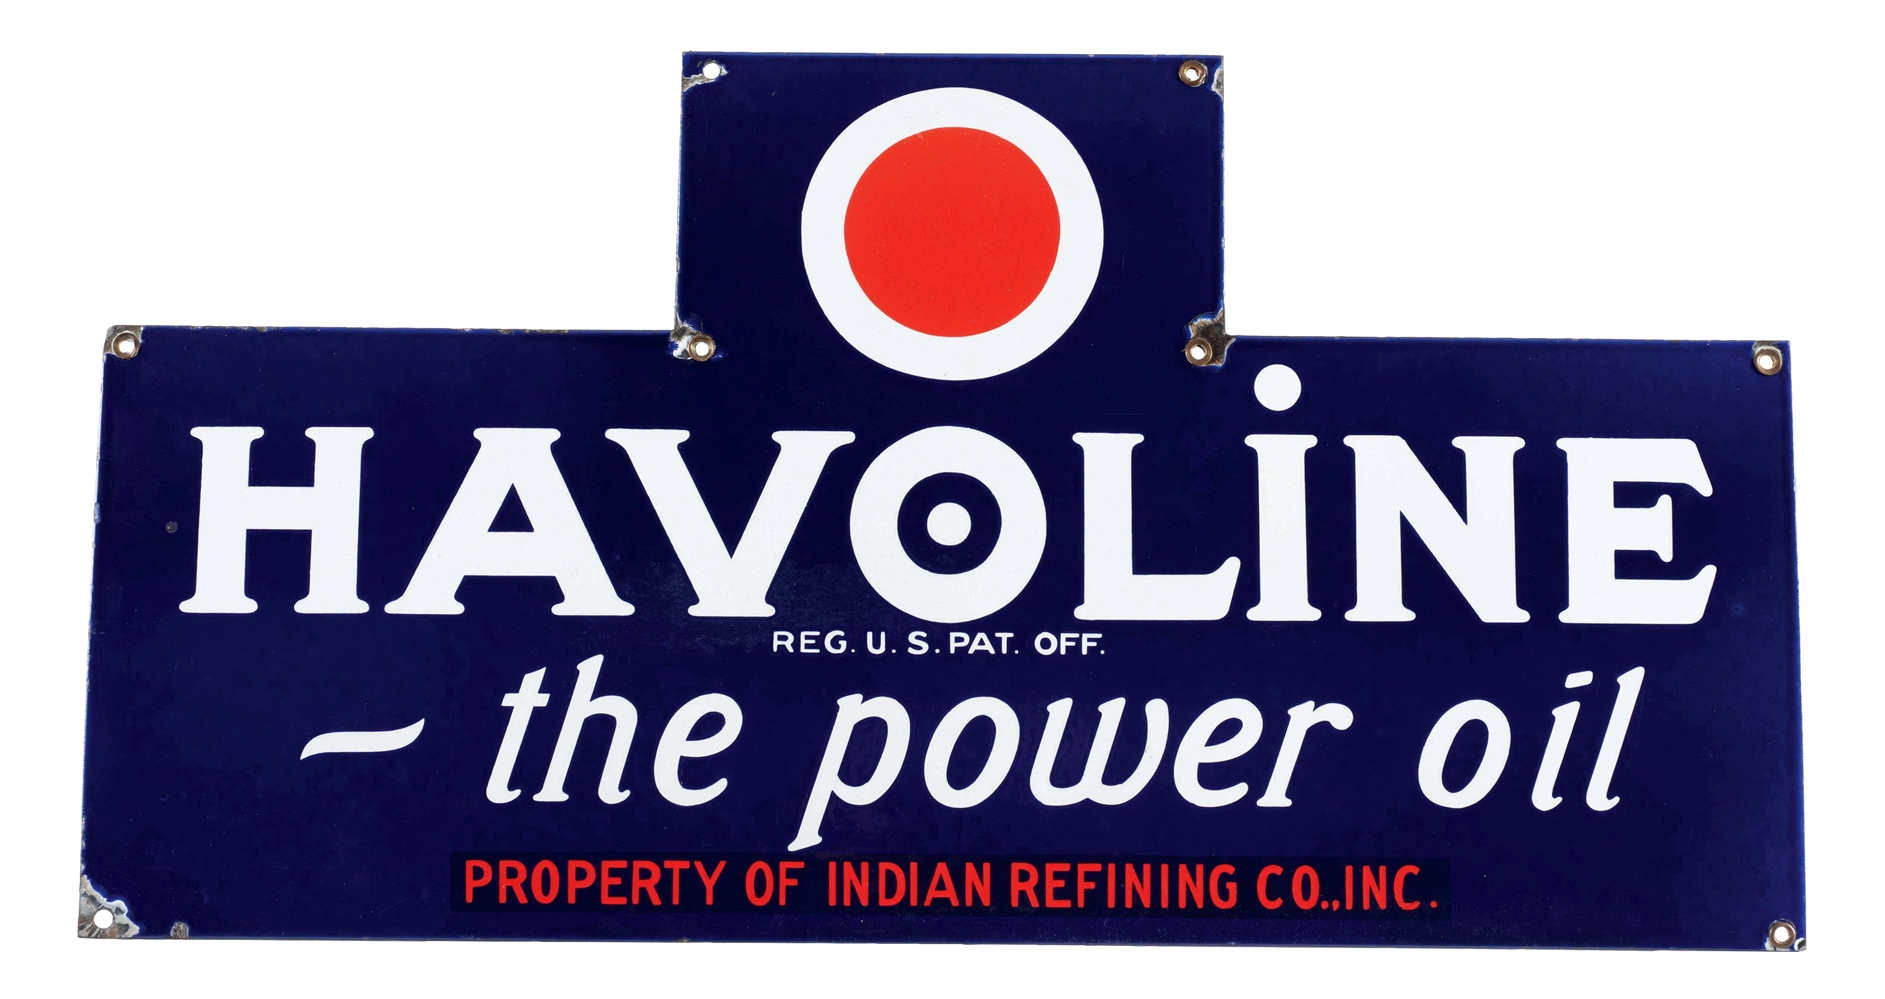 Havoline The Power Motor Oil Porcelain Bottle Rack Sign.